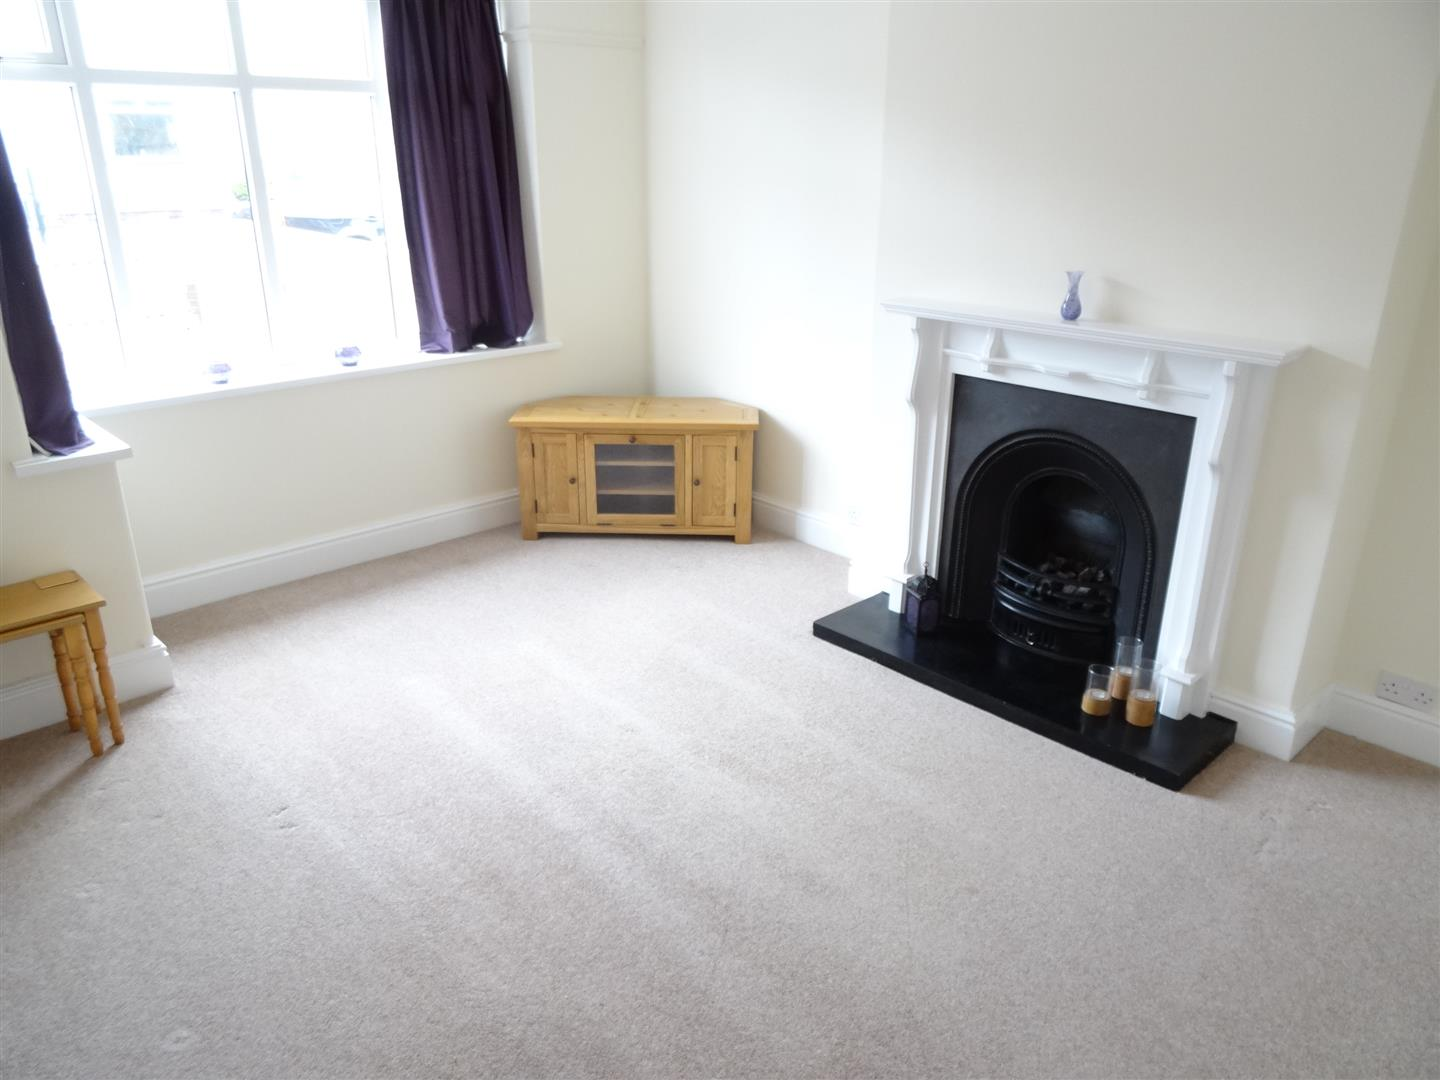 5 Bedrooms House - Semi-Detached For Sale 34 Criffel Road Carlisle